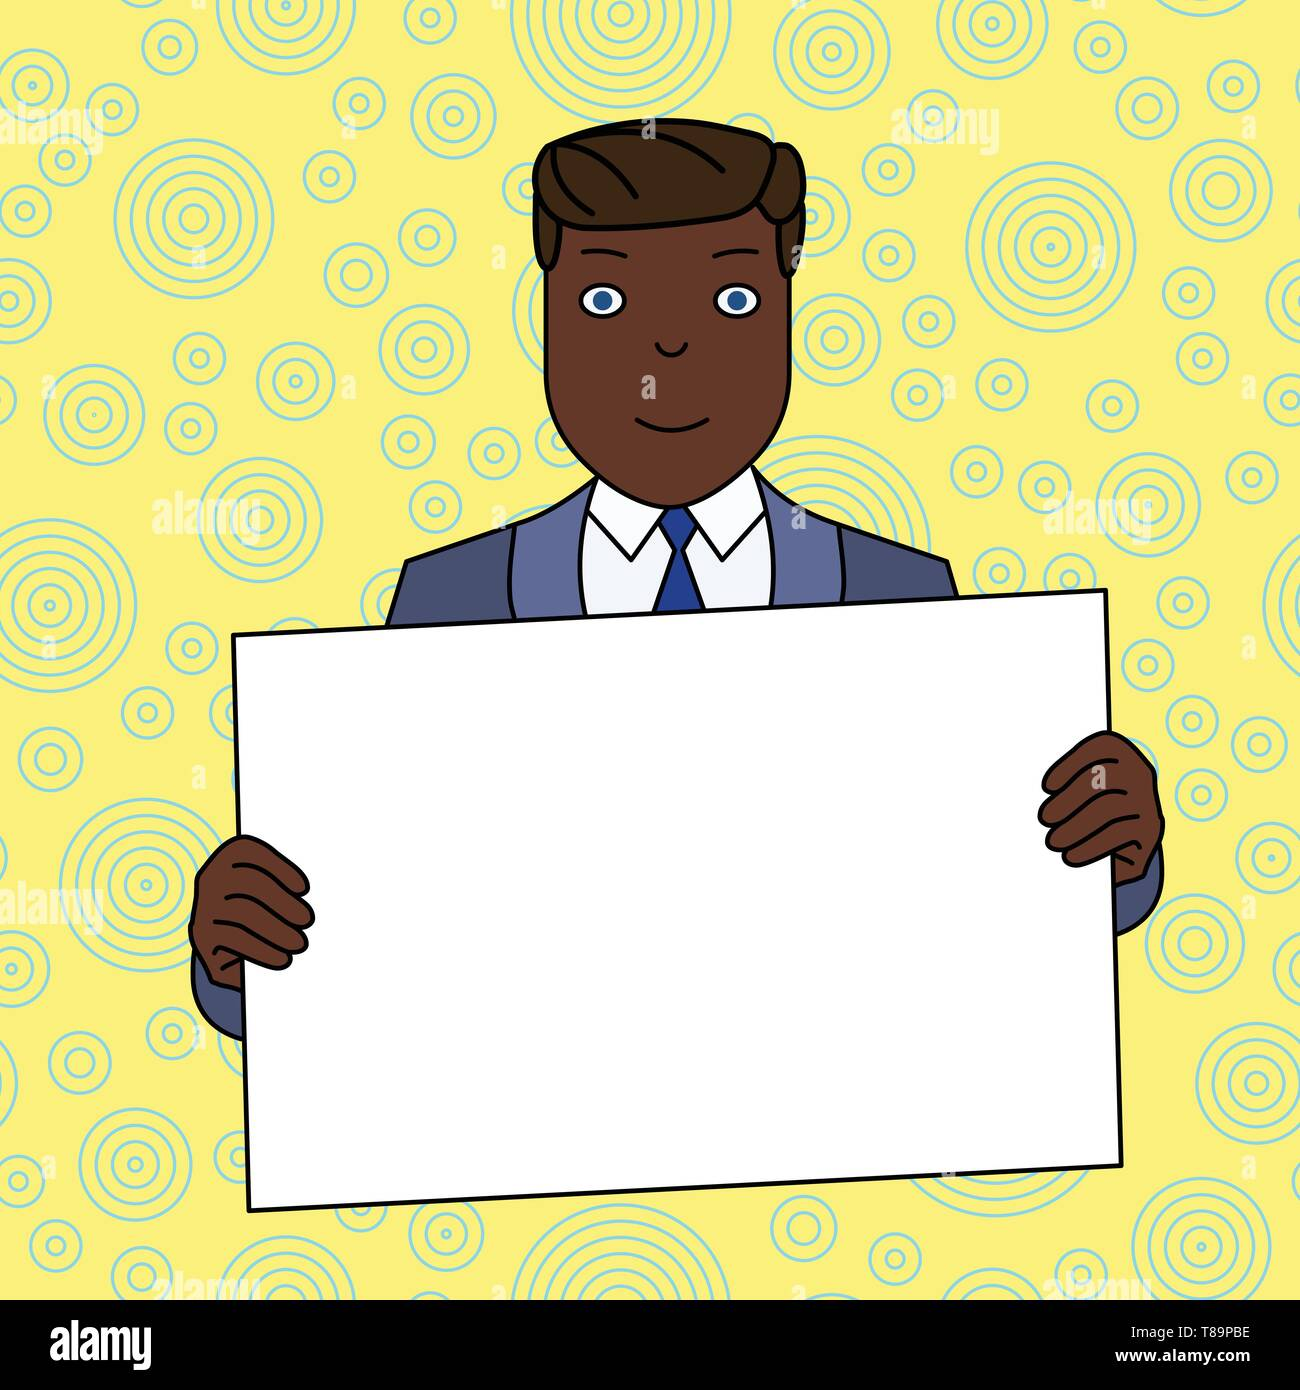 Smiling Man Holding Formal Suit Big Blank Poster Board In